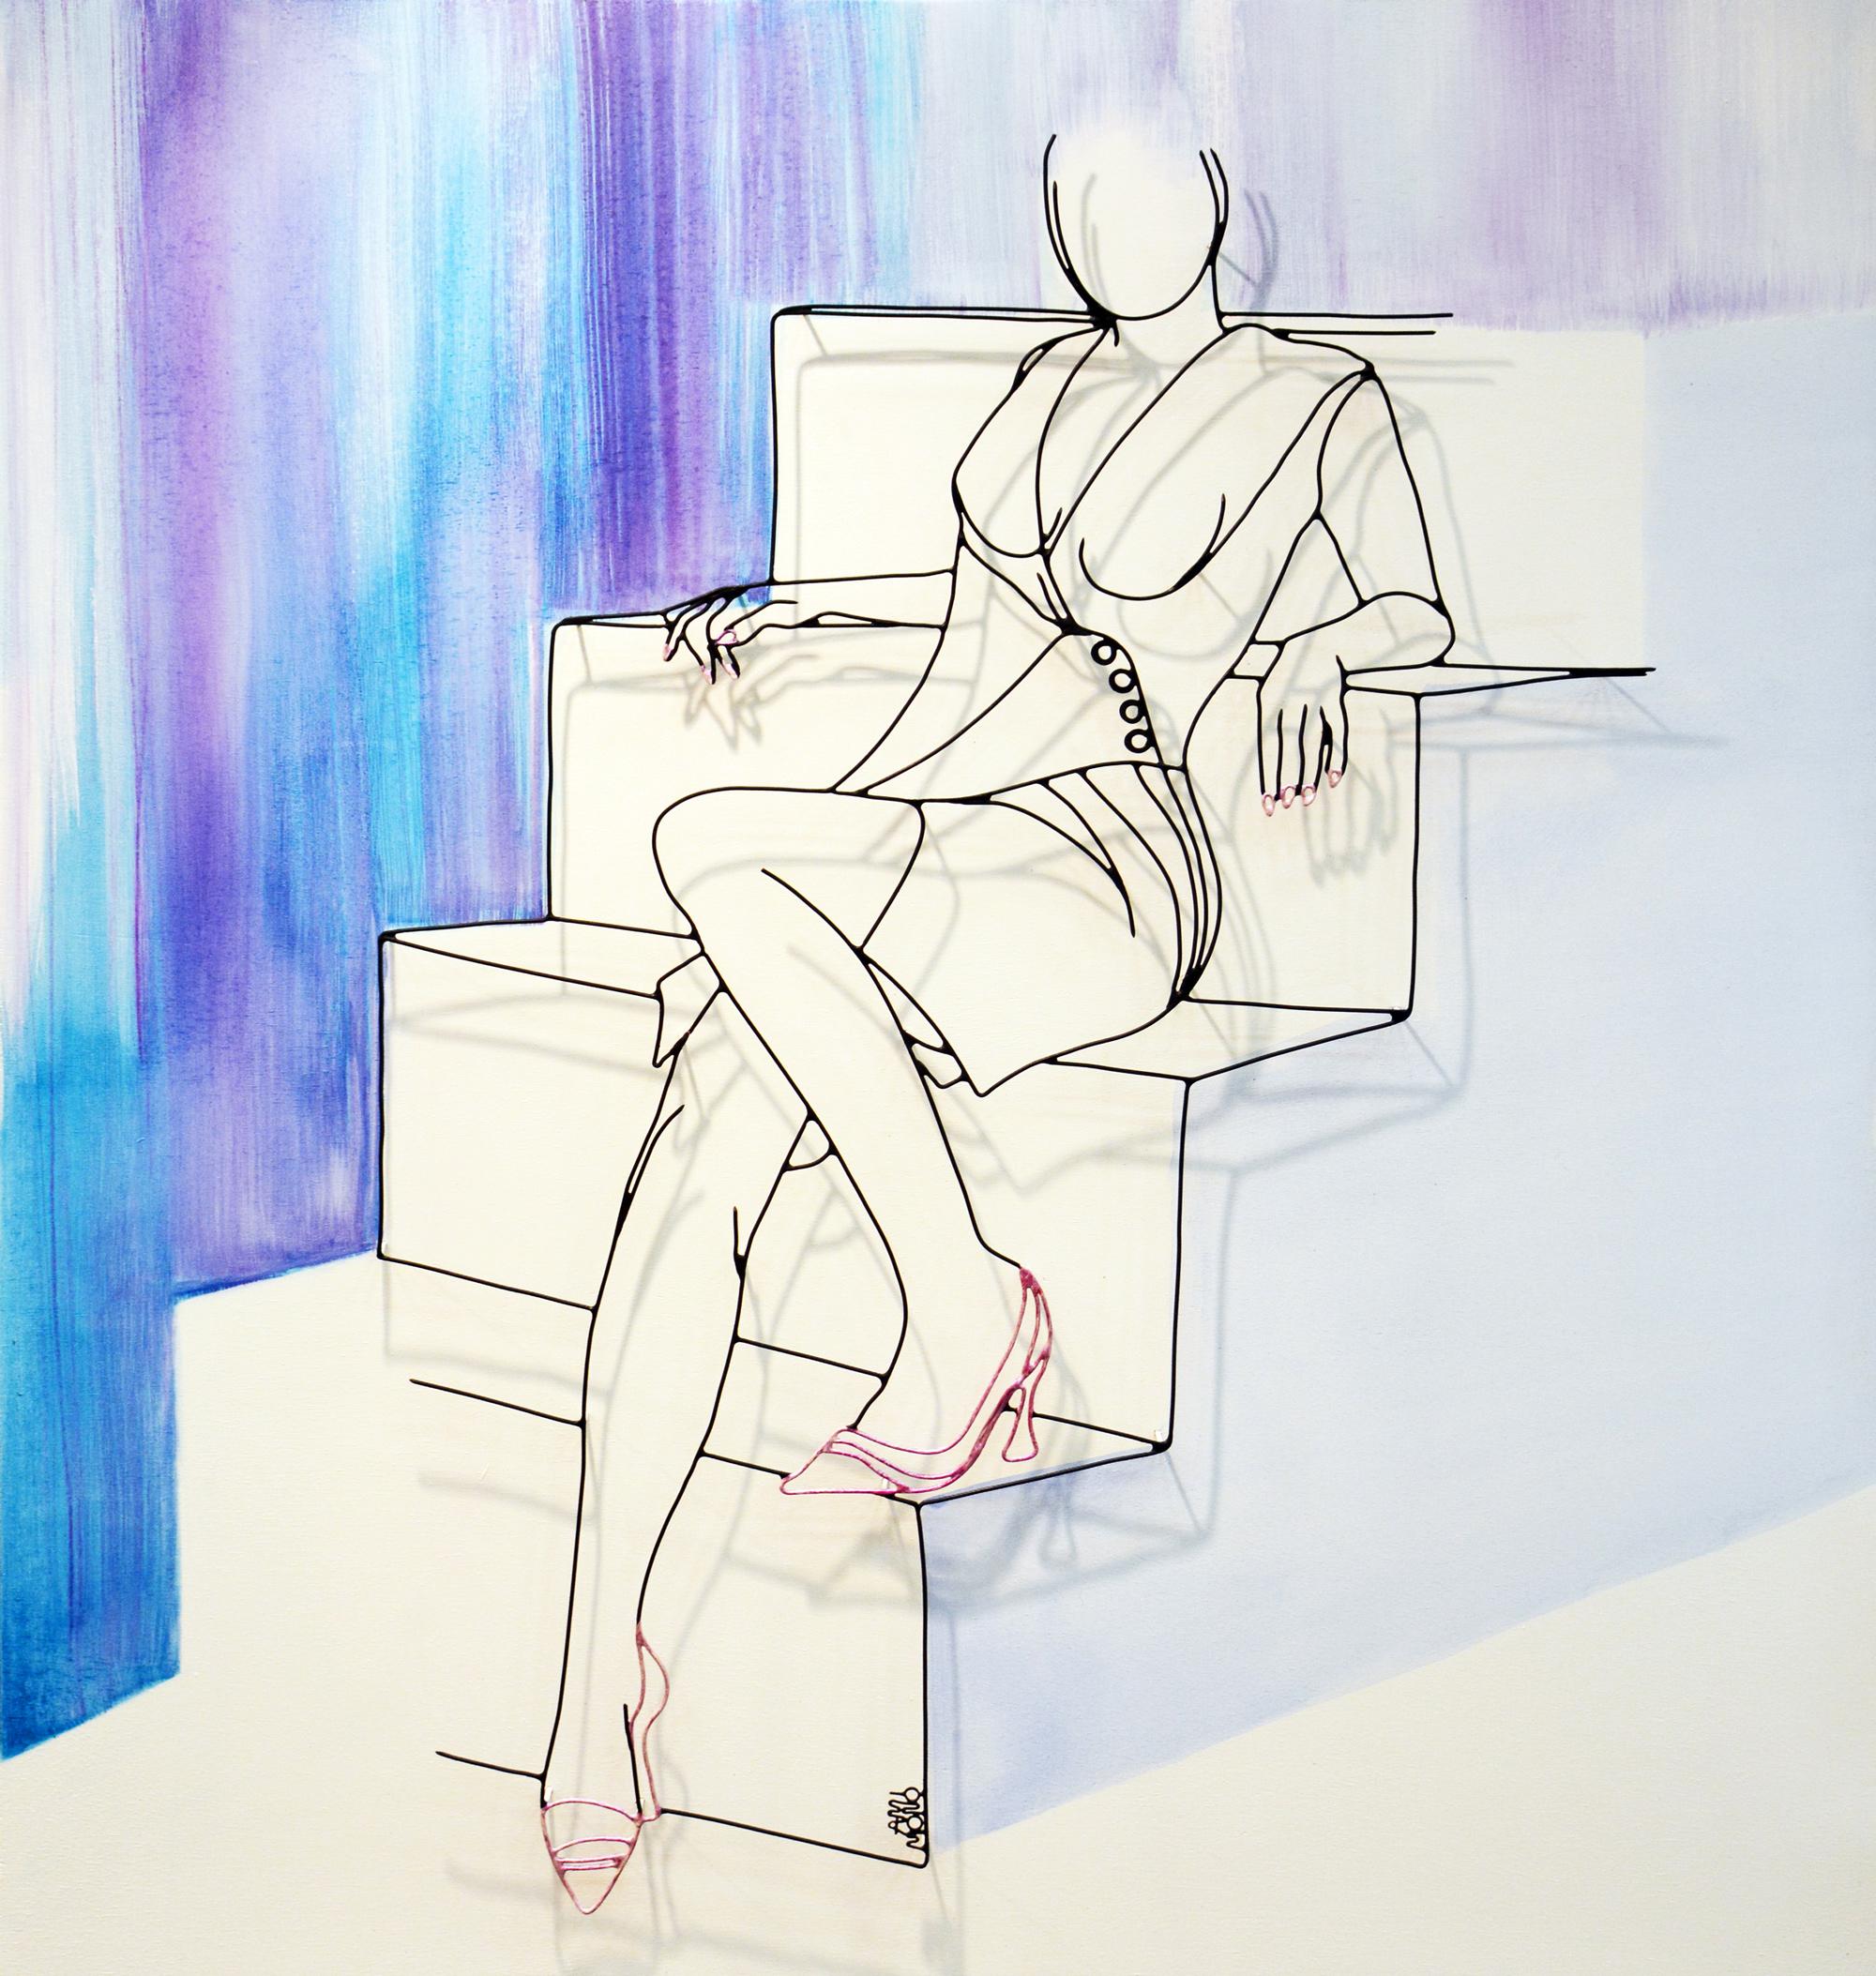 L'escalier wire sculpture by French artist Amimono available at Range of Arts Gallery Honfleur